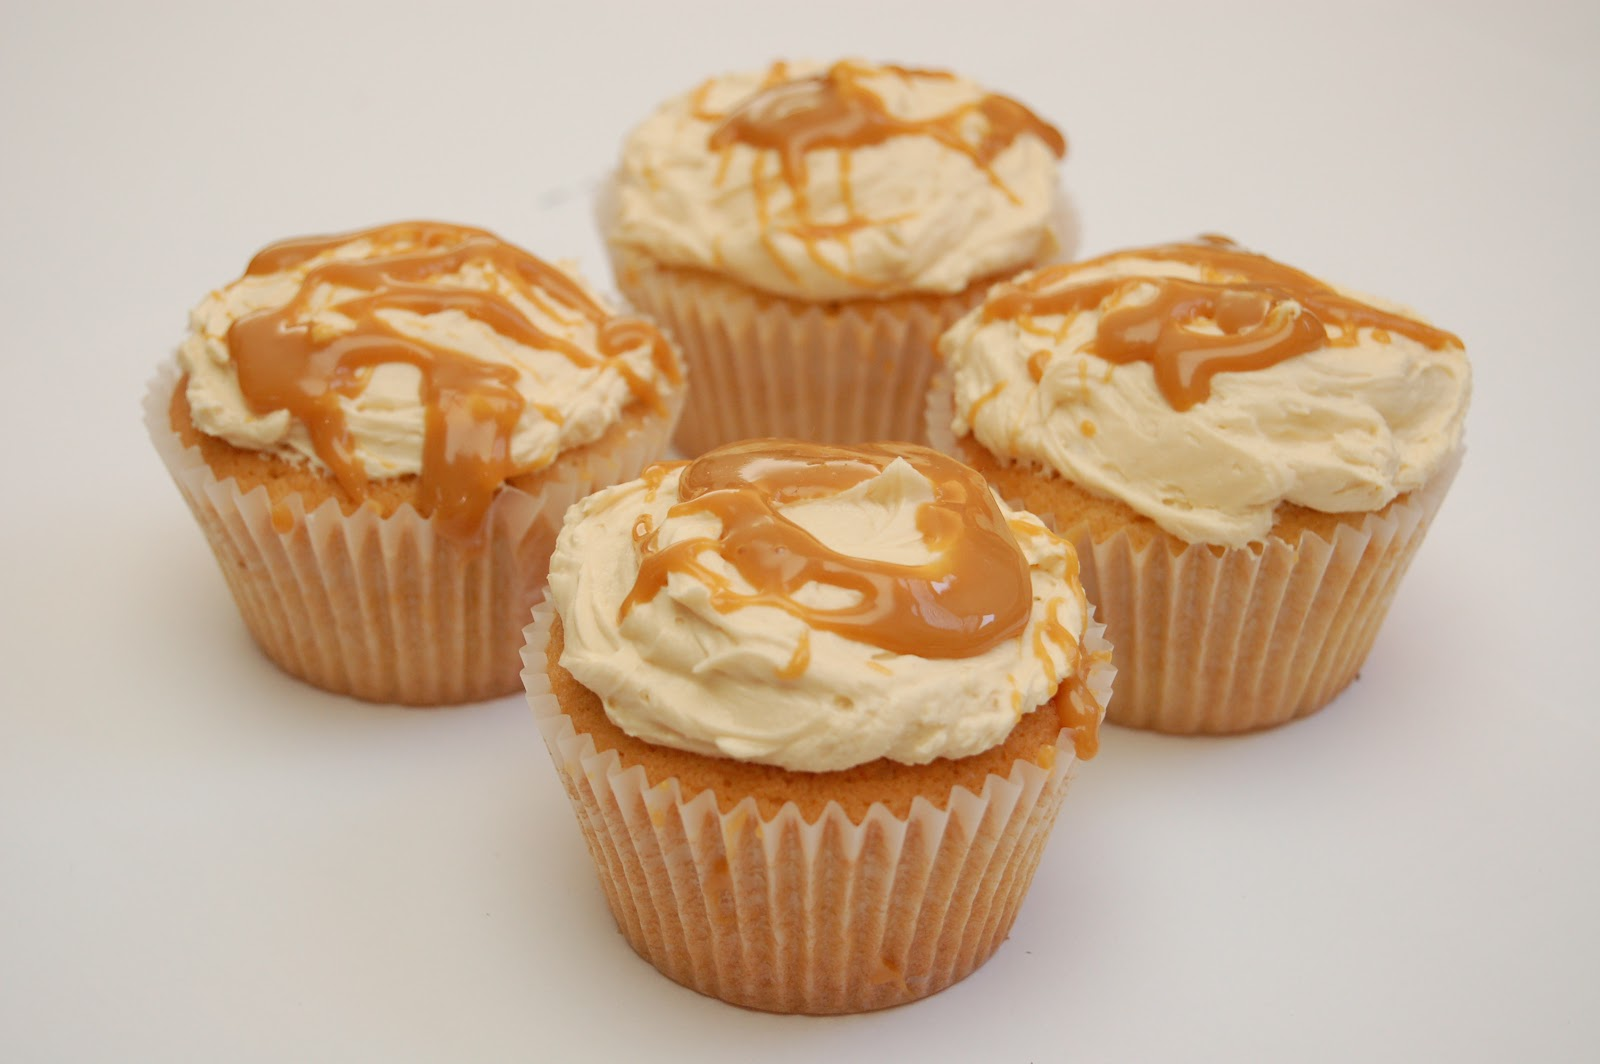 ... to eat properly: vanilla caramel cupcakes with salted caramel frosting